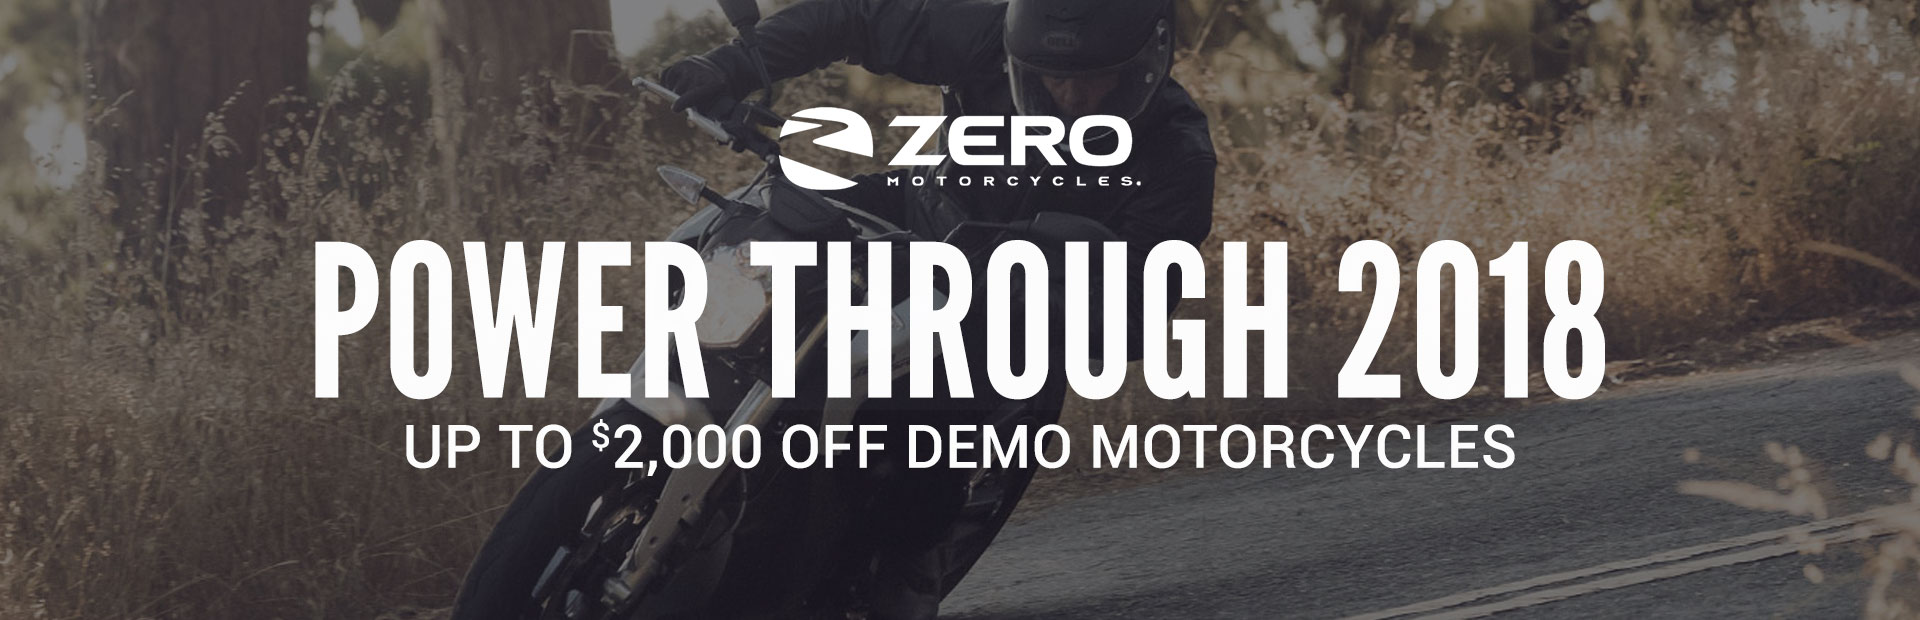 ZERO™: Power Through 2018